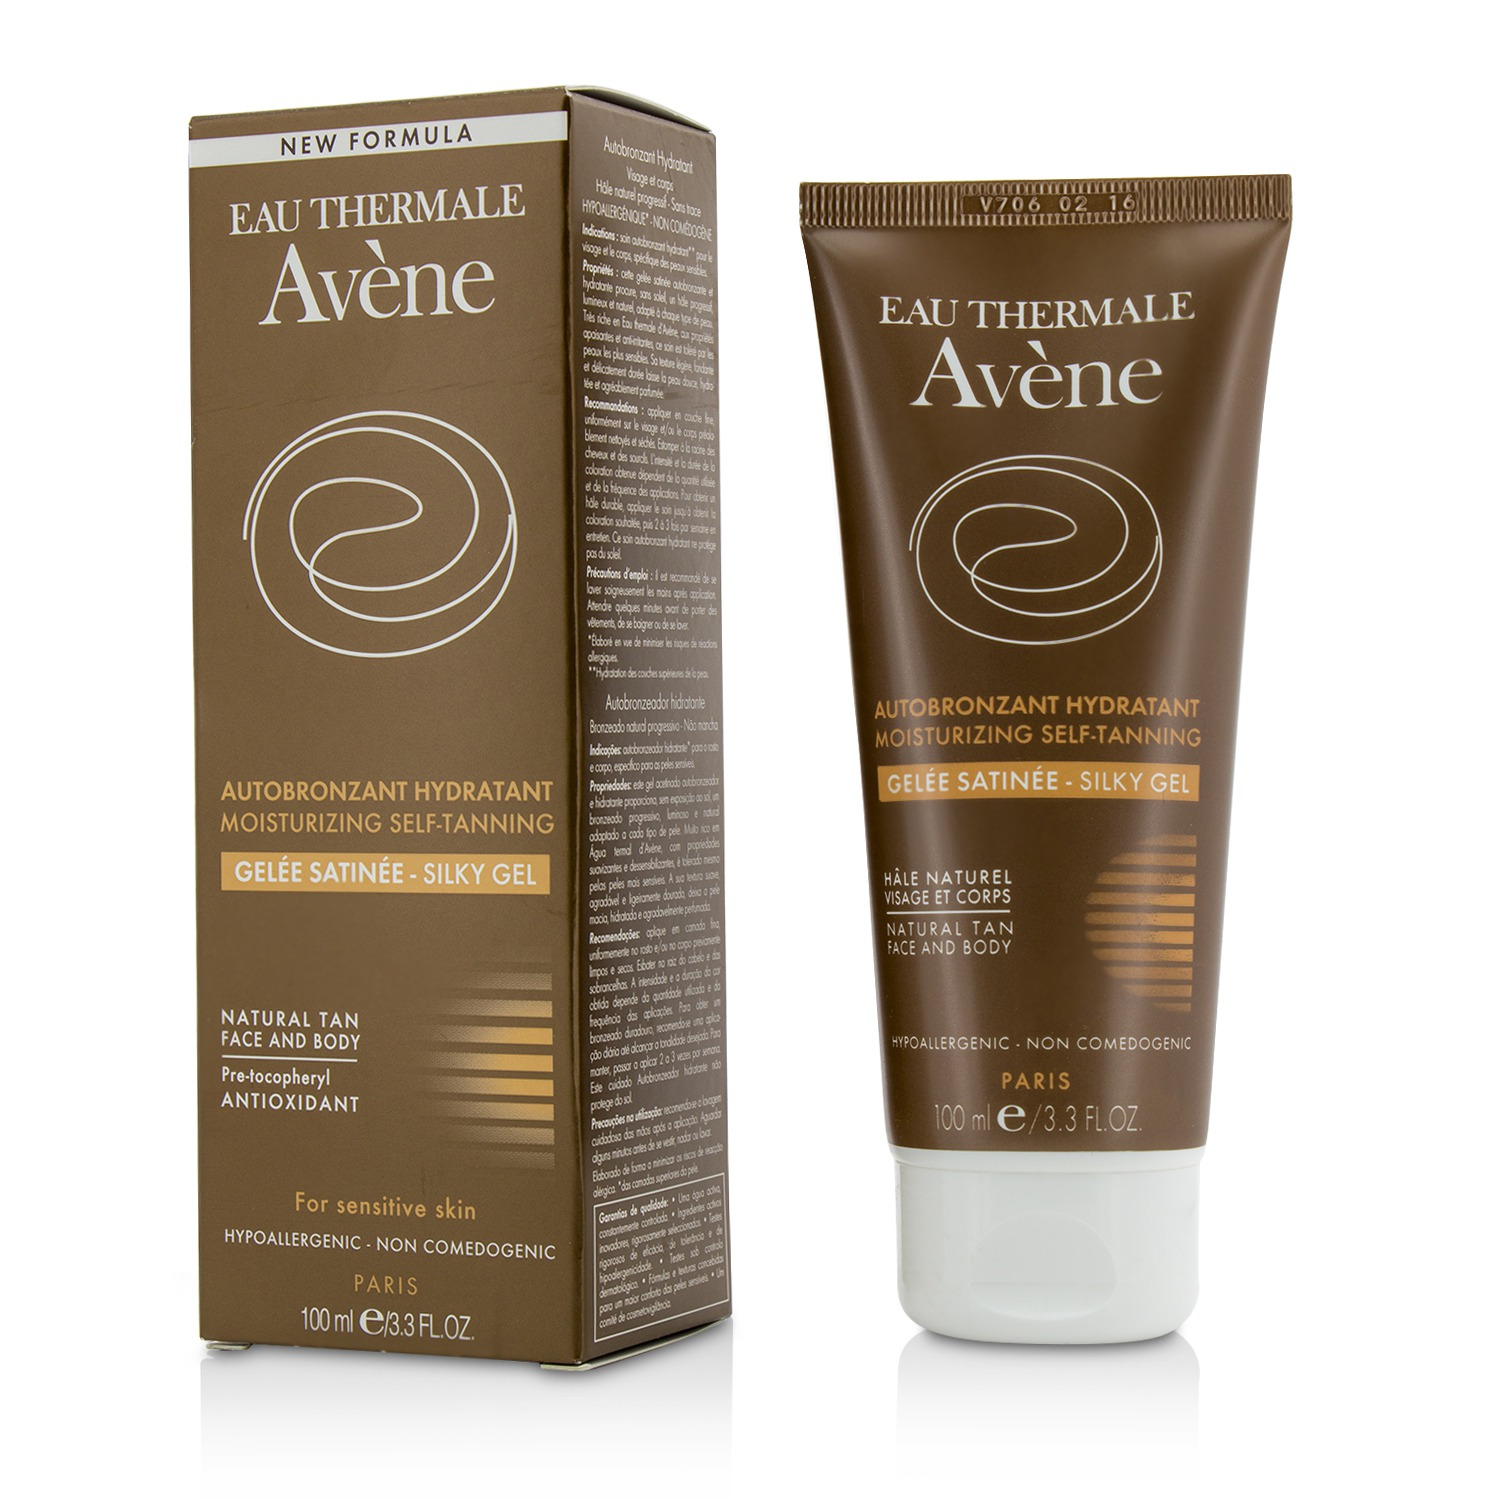 Moisturizing Self-tanning Silky Gel For Face & Body